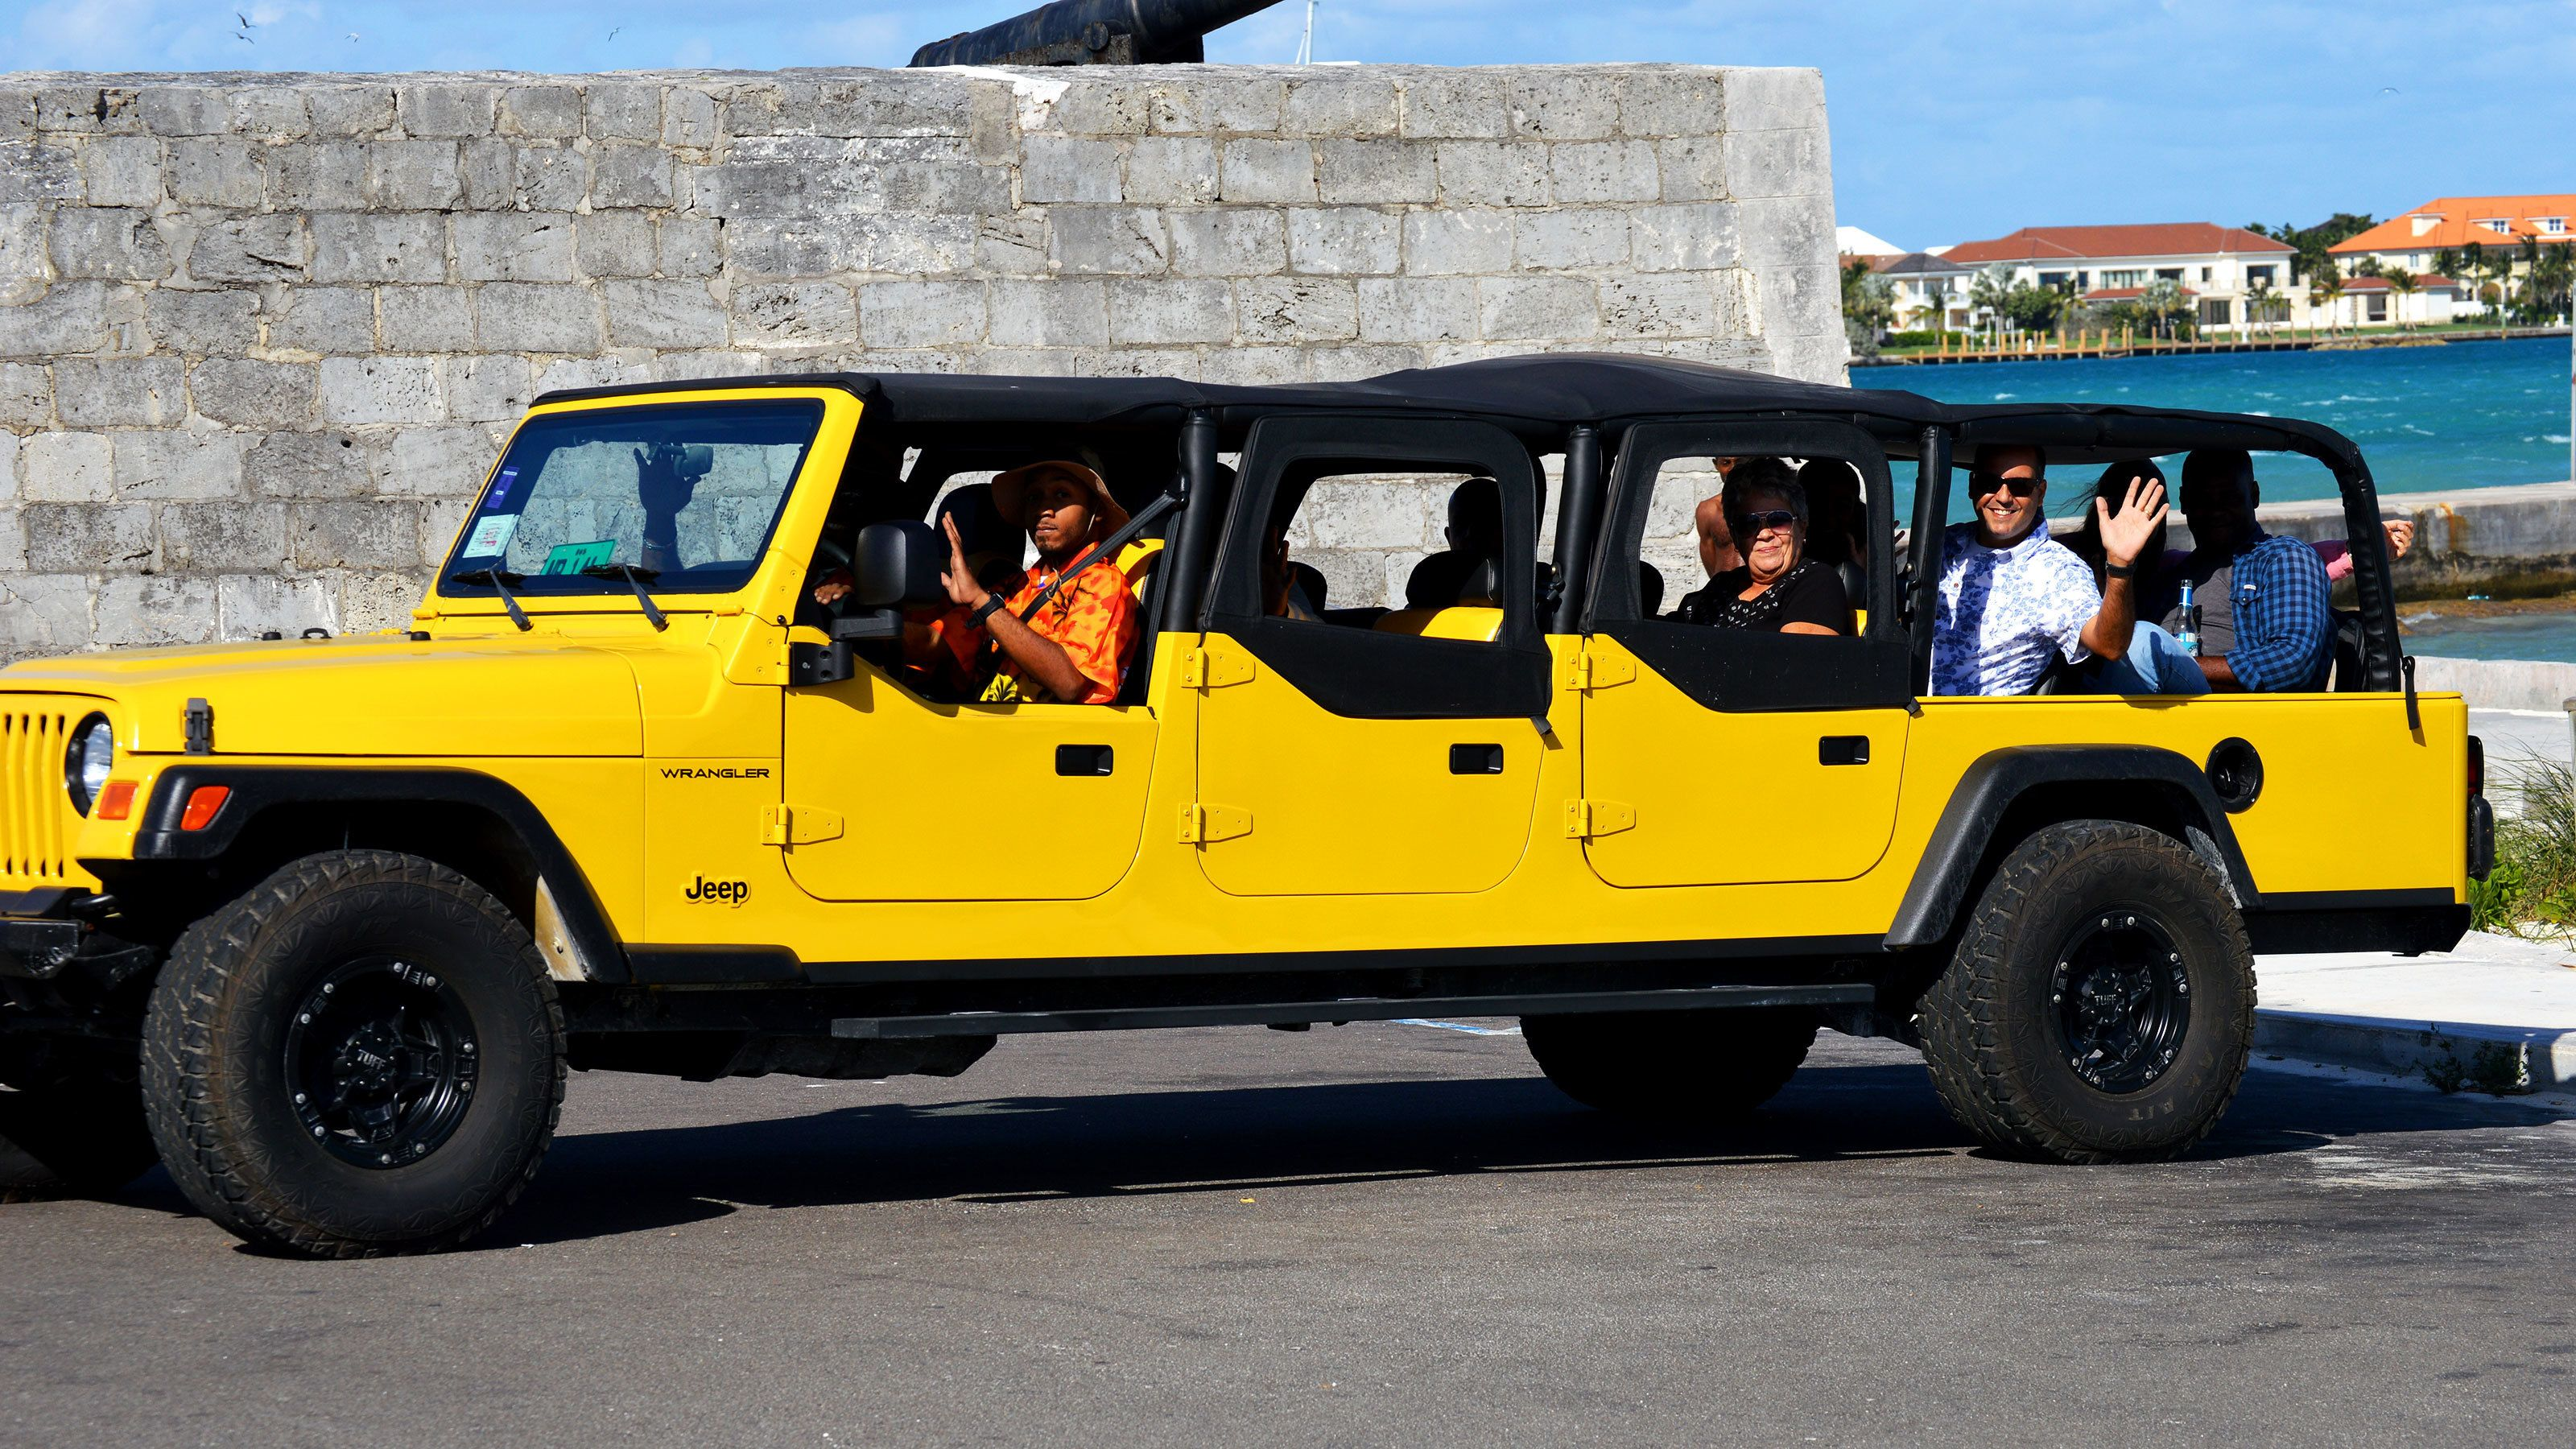 Tour group sit in jeep near beach in Nassau